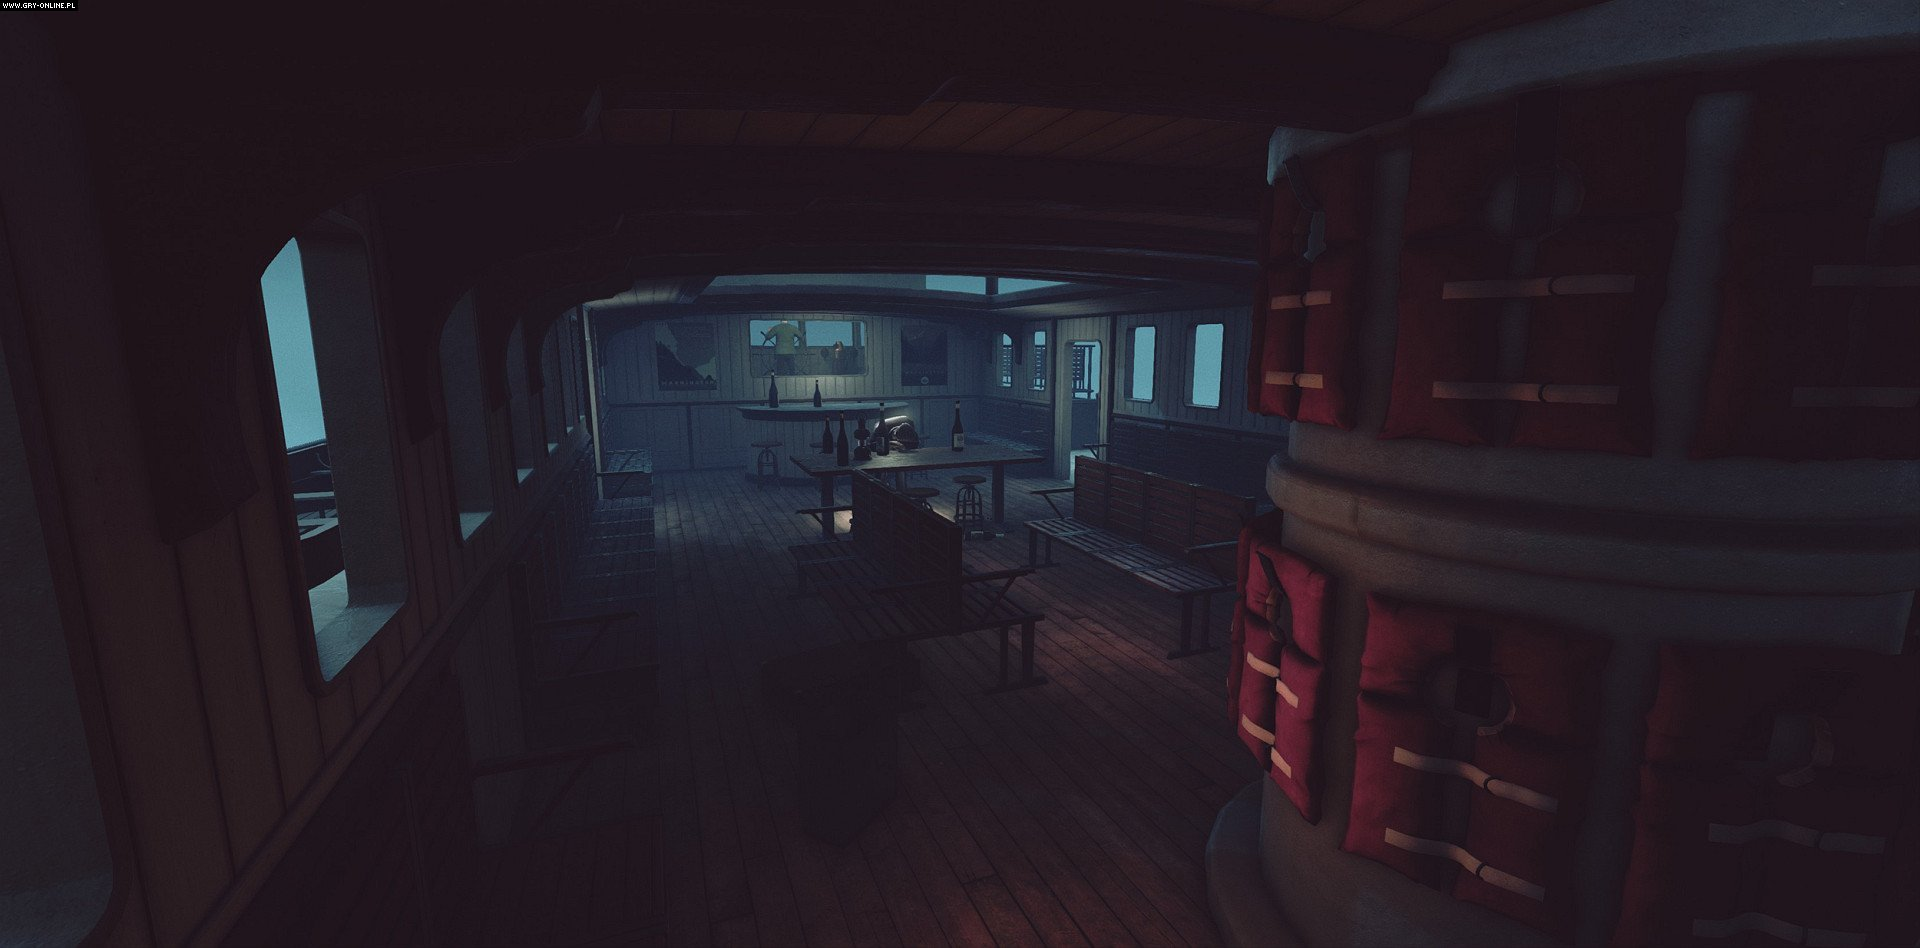 What Remains of Edith Finch PS4 Games Image 15/15, Giant Sparrow , Sony Interactive Entertainment